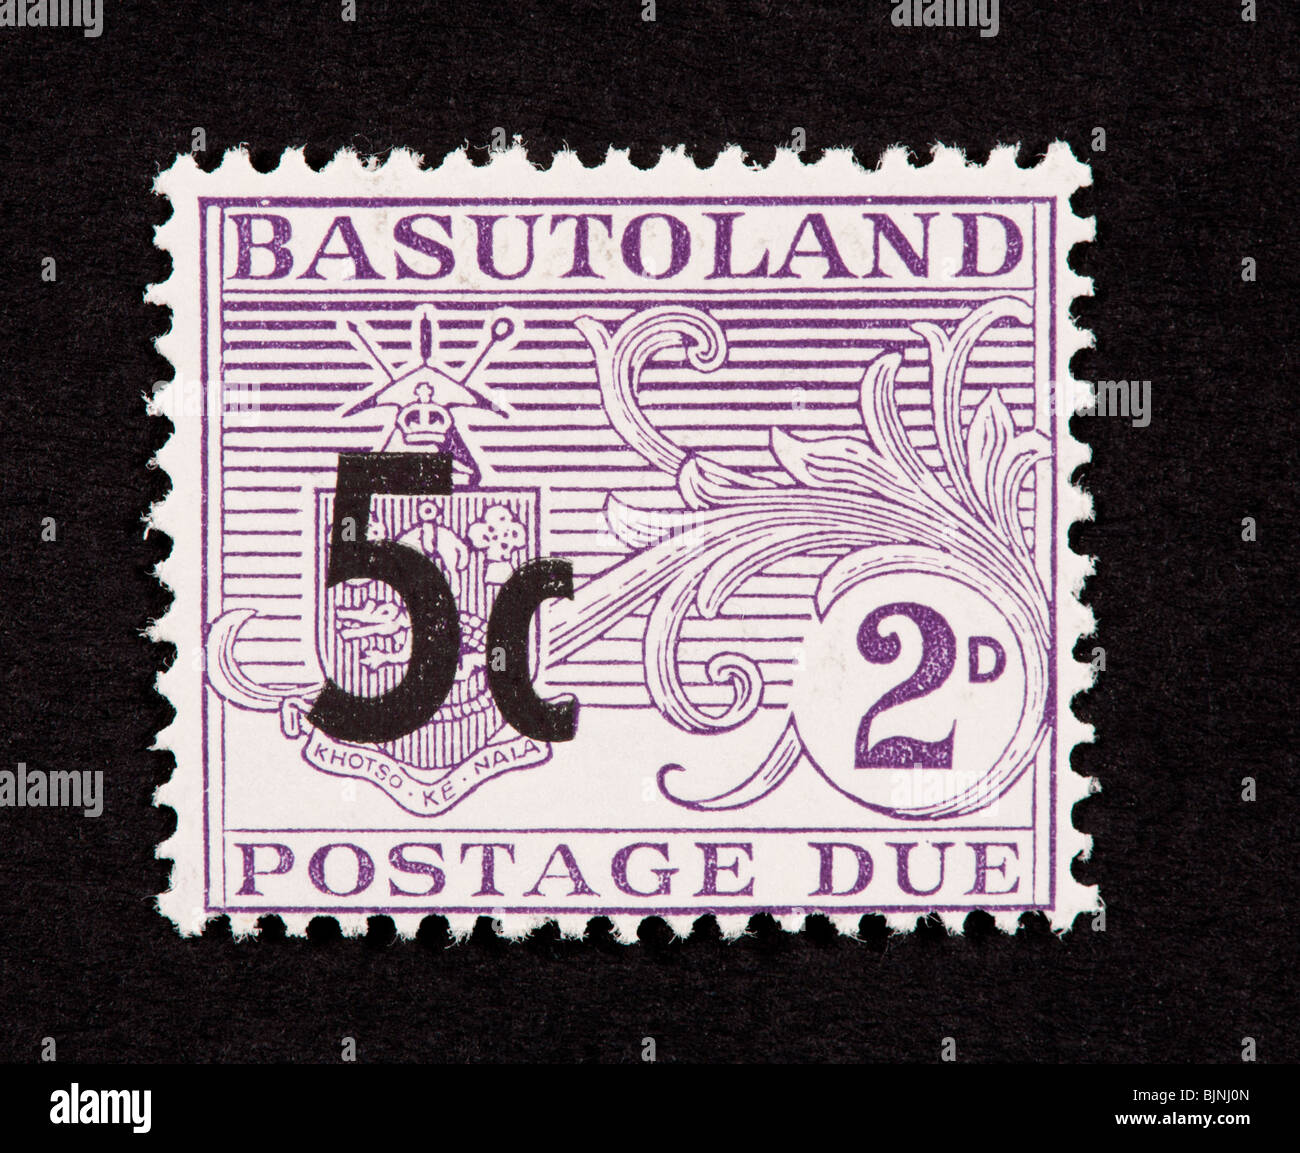 Postage due stamp from Basutoland (later Lesotho), overprinted with higher denomination. - Stock Image